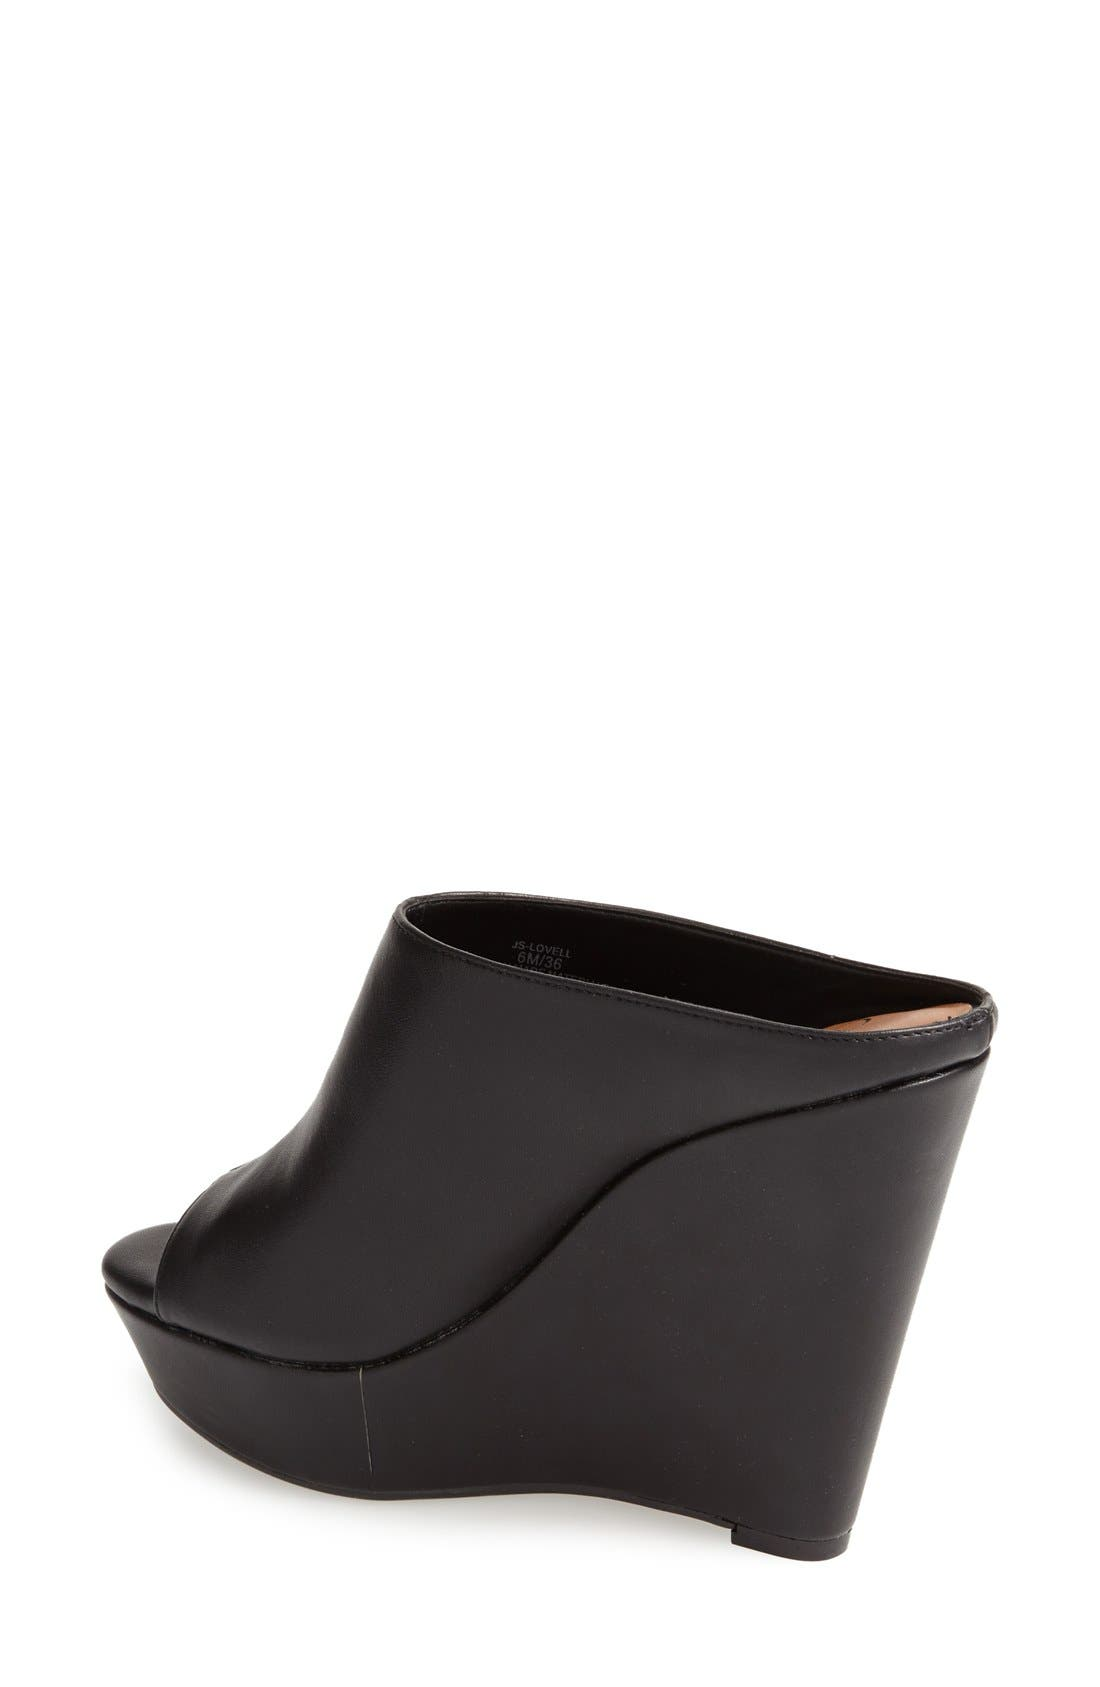 Alternate Image 2  - Jessica Simpson 'Lovell' Platform Wedge Sandal (Women)